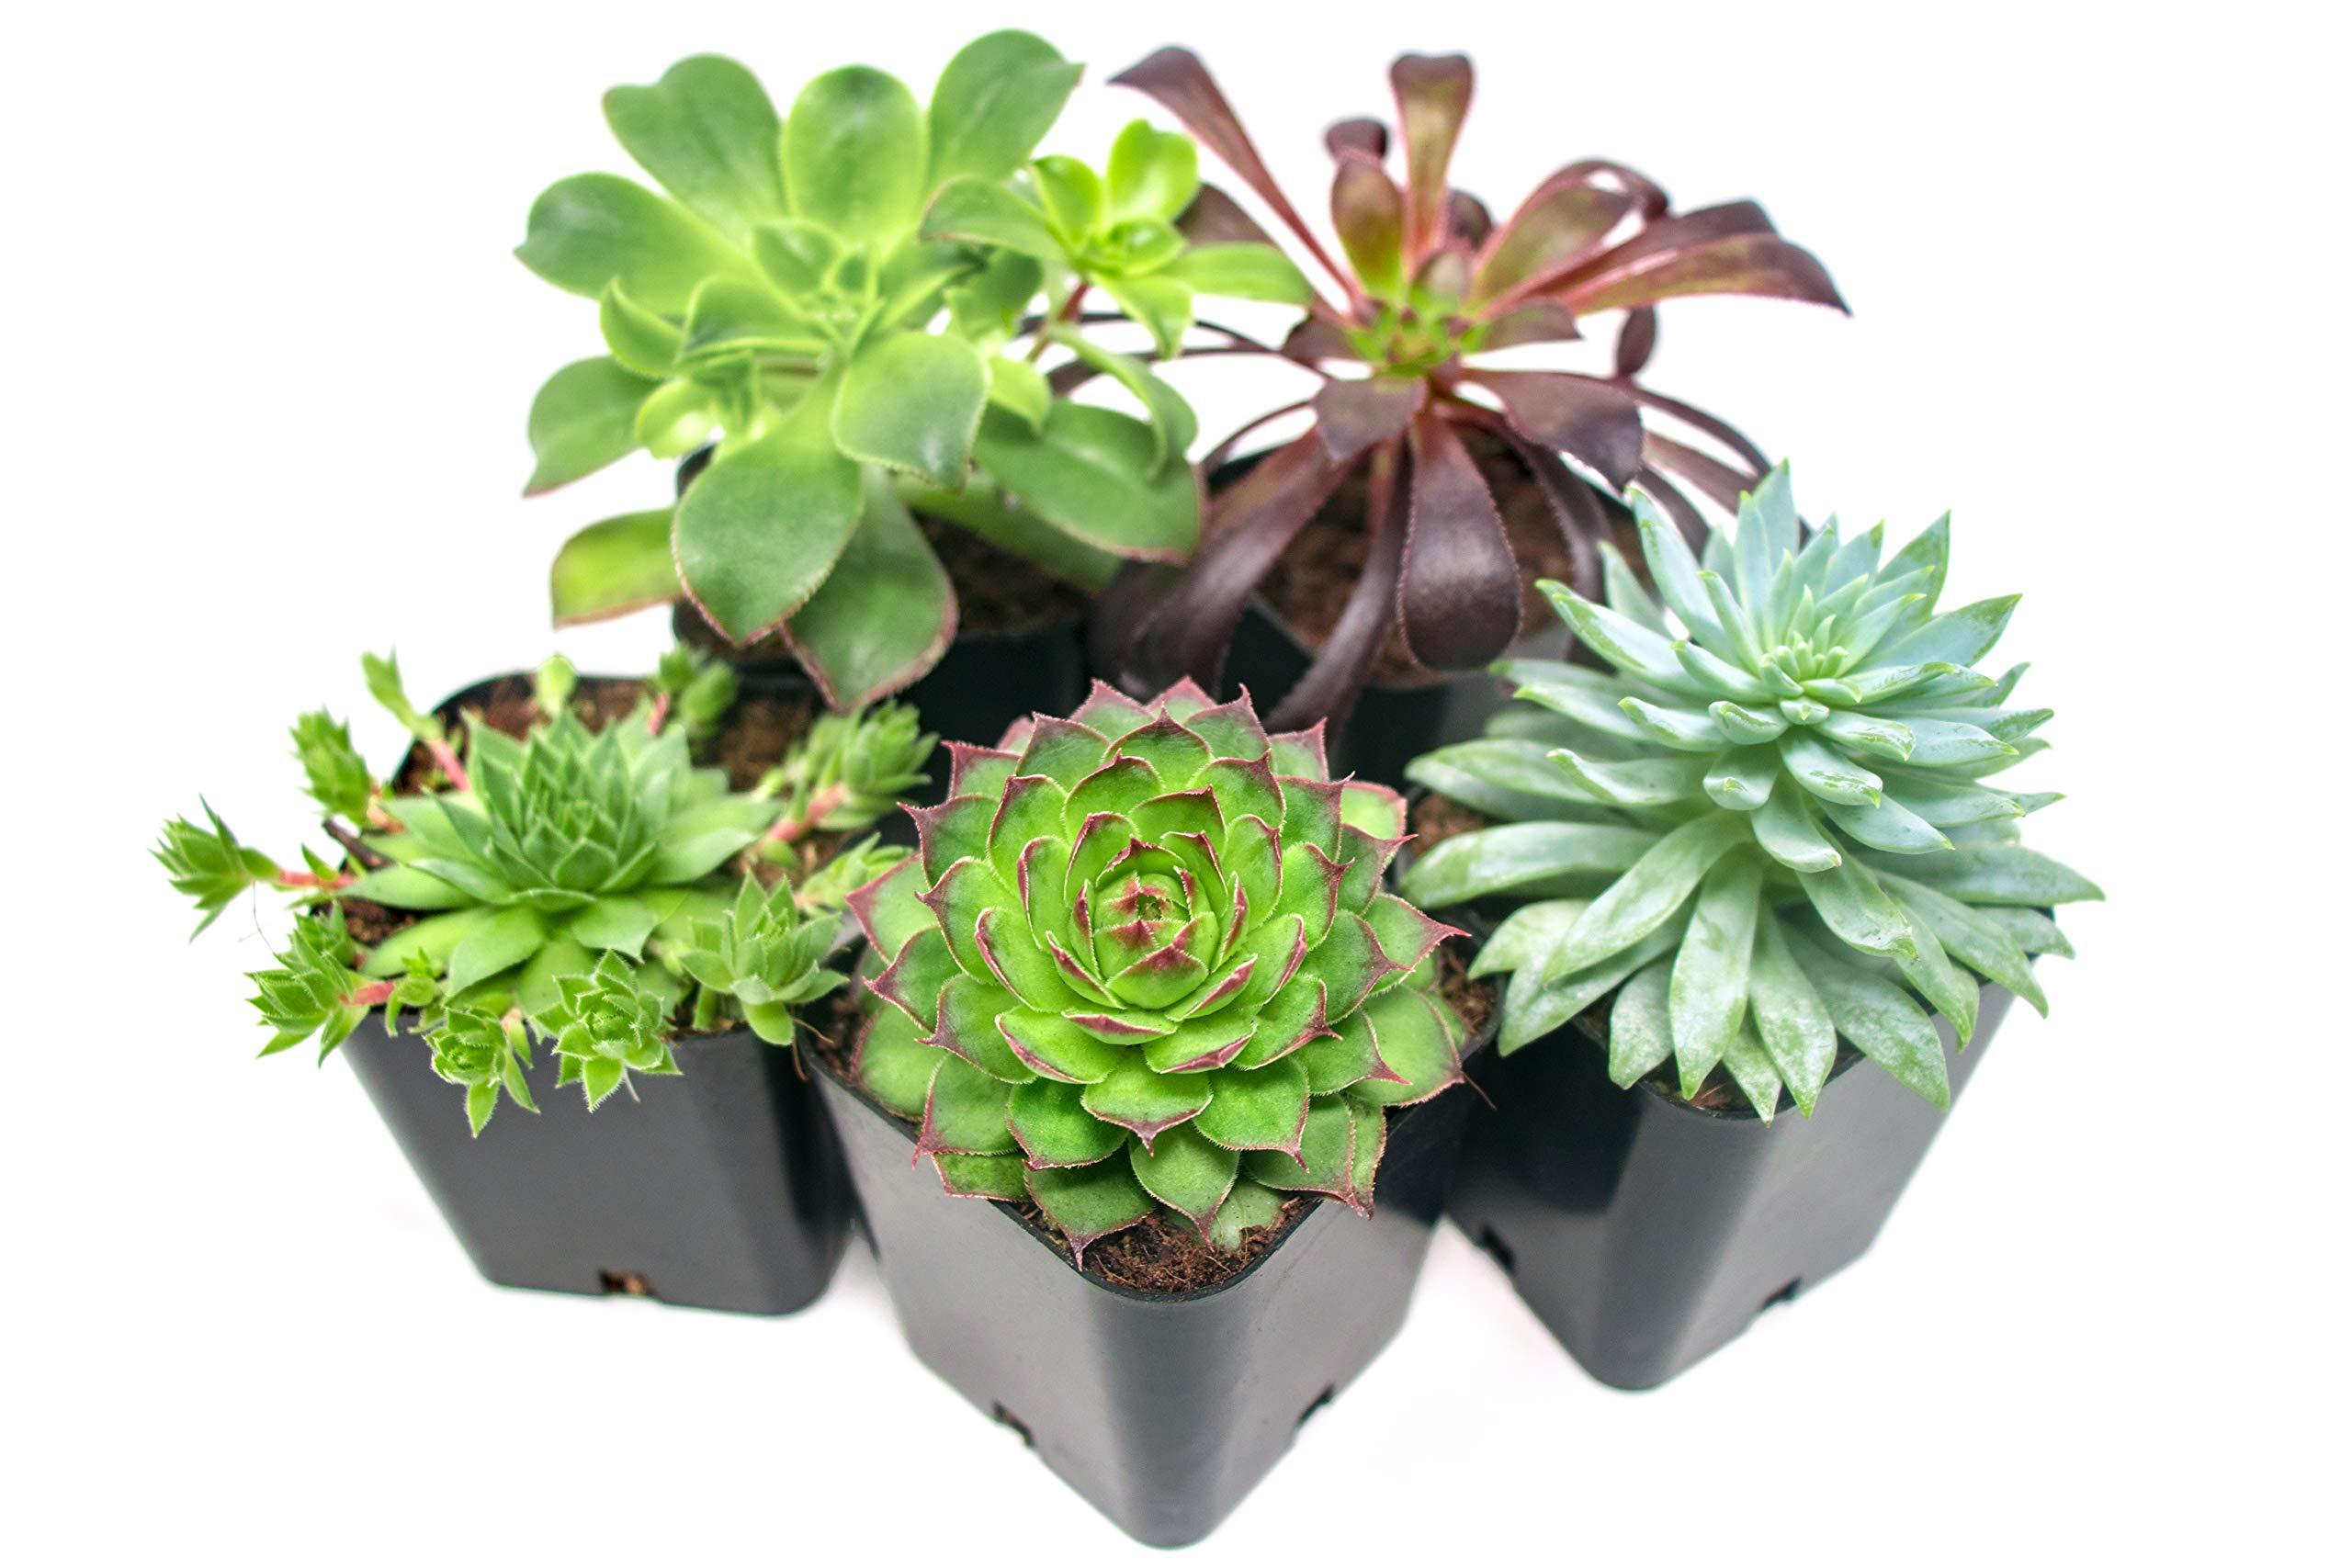 Succulent Plants (5 Pack), Fully Rooted in Planter Pots with Soil -  Real Live Potted Succulents / Unique Indoor Cactus Decor by Plants for Pets 1 HAND SELECTED: Every pack of succulents we send is hand-picked. You will receive a unique collection of species that are FULLY ROOTED IN 2 INCH POTS, which will be similar to the product photos (see photo 2 for scale). Note that we rotate our nursery stock often, so the exact species we send changes every week. THE EASIEST HOUSE PLANTS: More appealing than artificial plastic or fake faux plants, and care is a cinch. If you think you can't keep houseplants alive, you're wrong; our succulents don't require fertilizer and can be planted in a decorative pot of your choice within seconds. DIY HOME DECOR: The possibilities are only limited by your imagination; display them in a plant holder, a wall mount, a geometric glass vase, or even in a live wreath. Because of their amazingly low care requirements, they can even make the perfect desk centerpiece for your office.